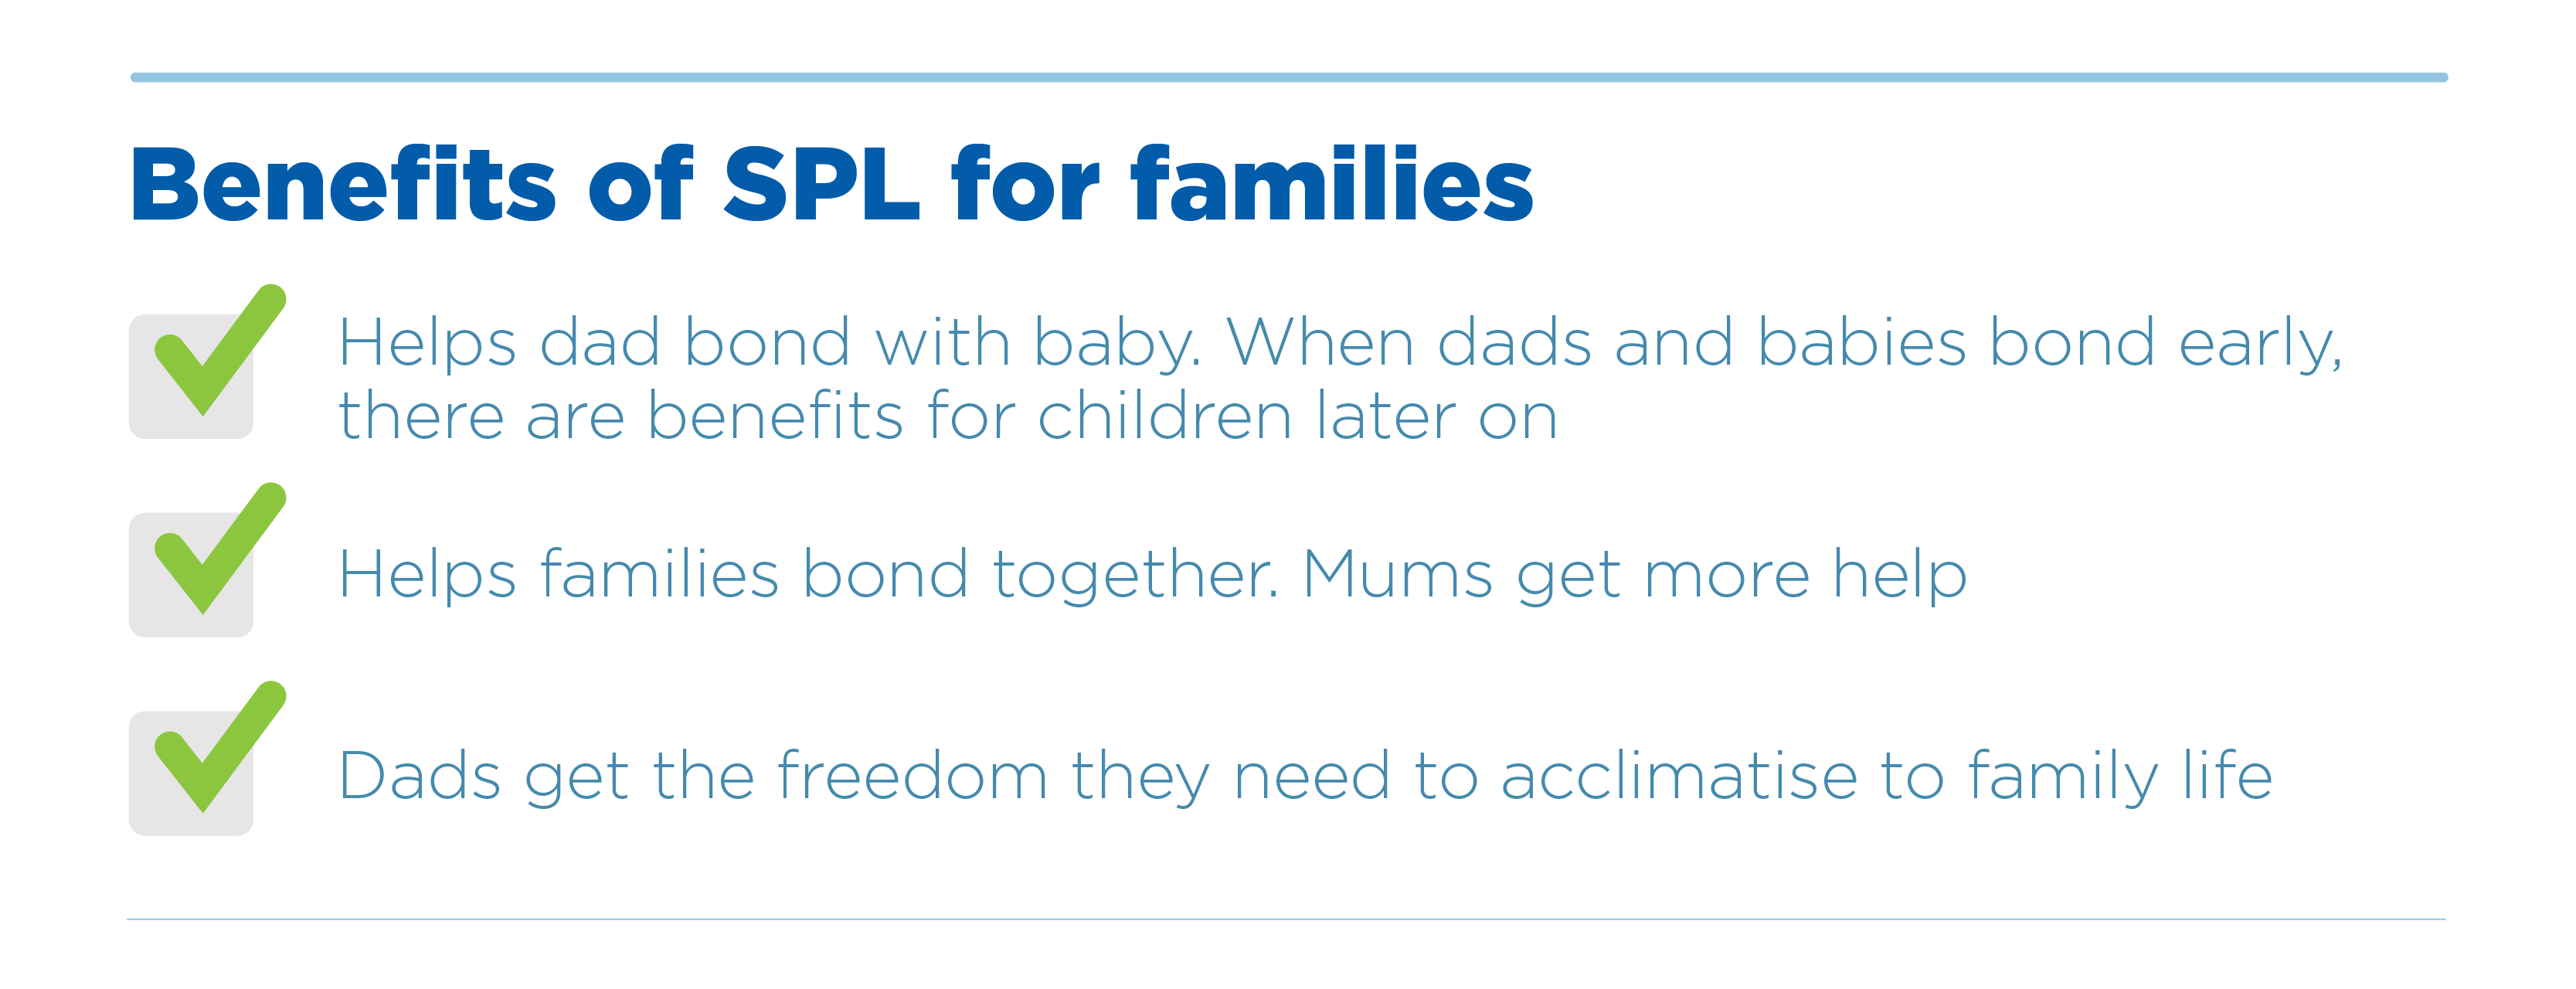 benefits of spl, SPL benefits, shared parental leave